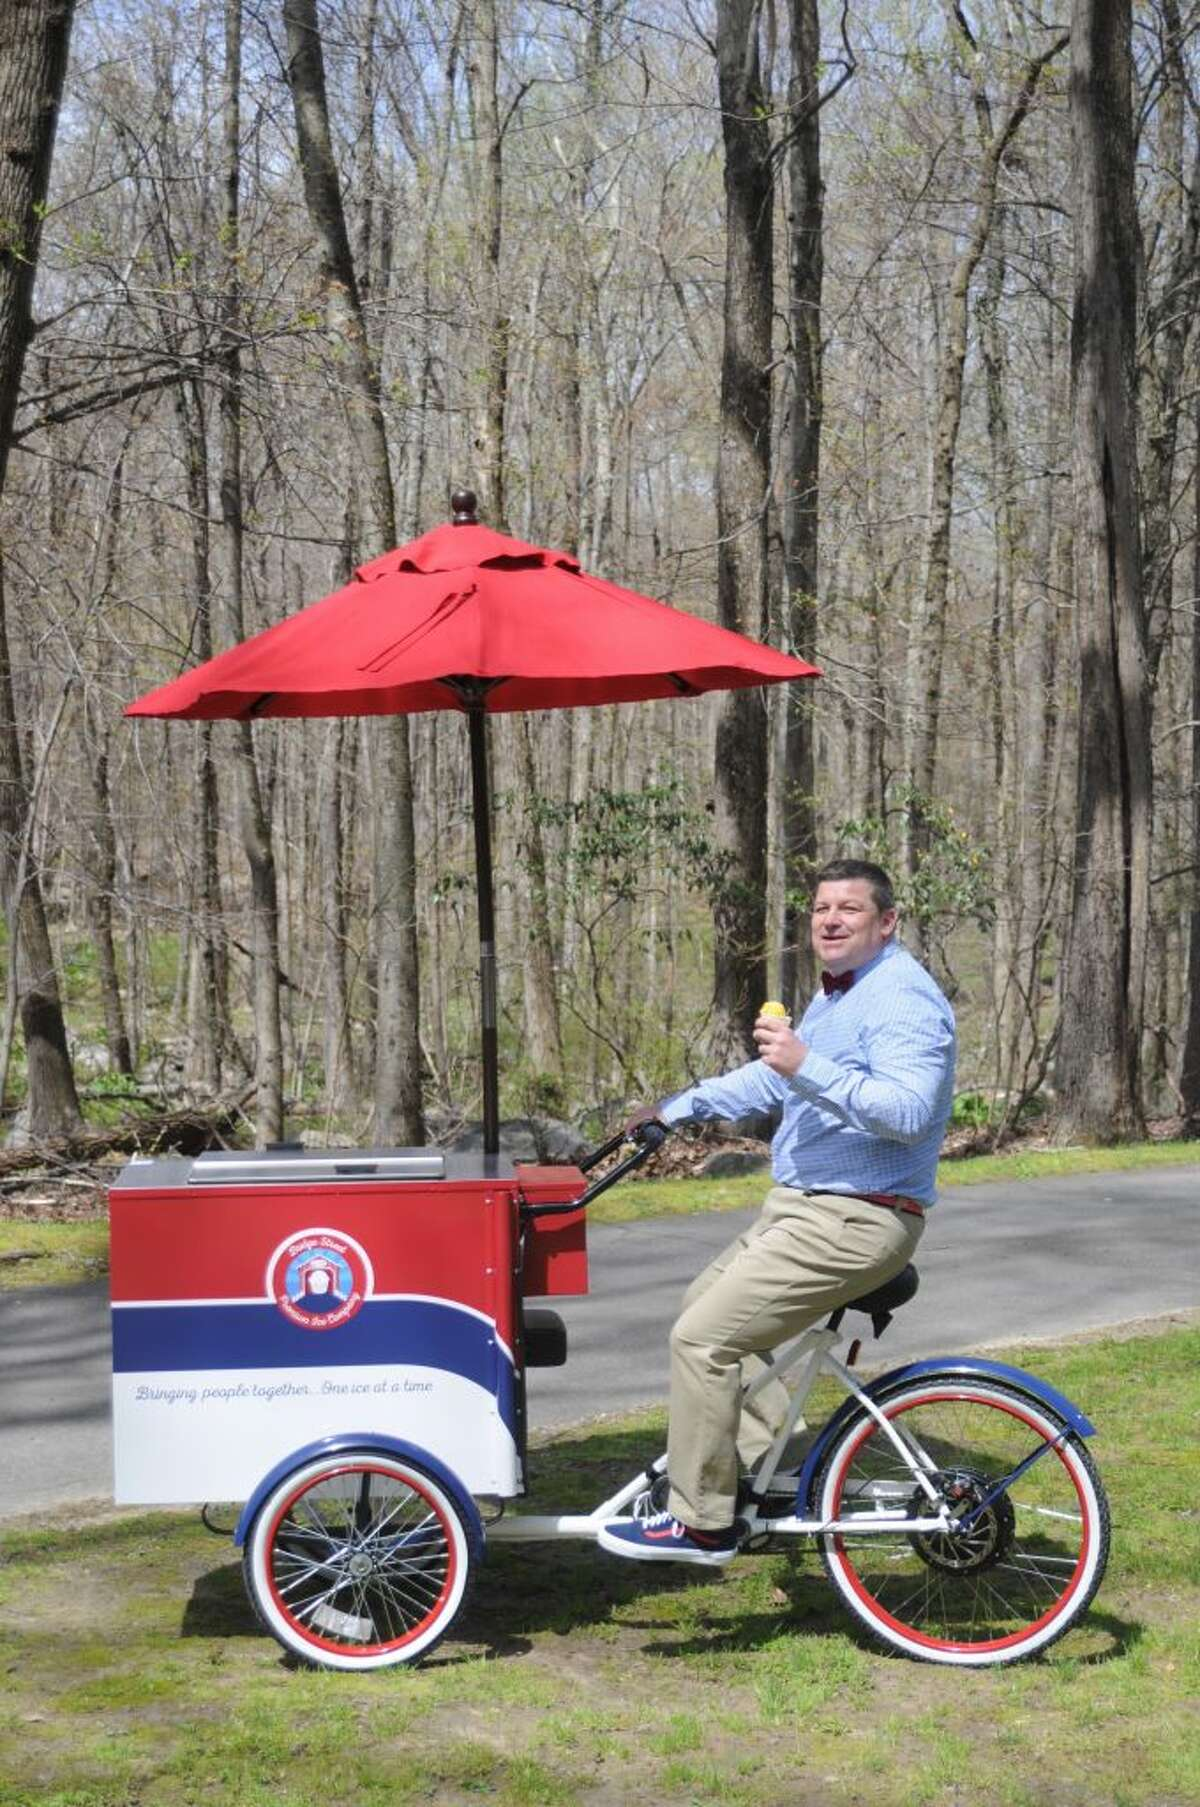 Michael Cunningham's Bridge Street Premium Ice has gotten a permit from the selectmen to sell sorbet from his vendor tricycle at events and parties.